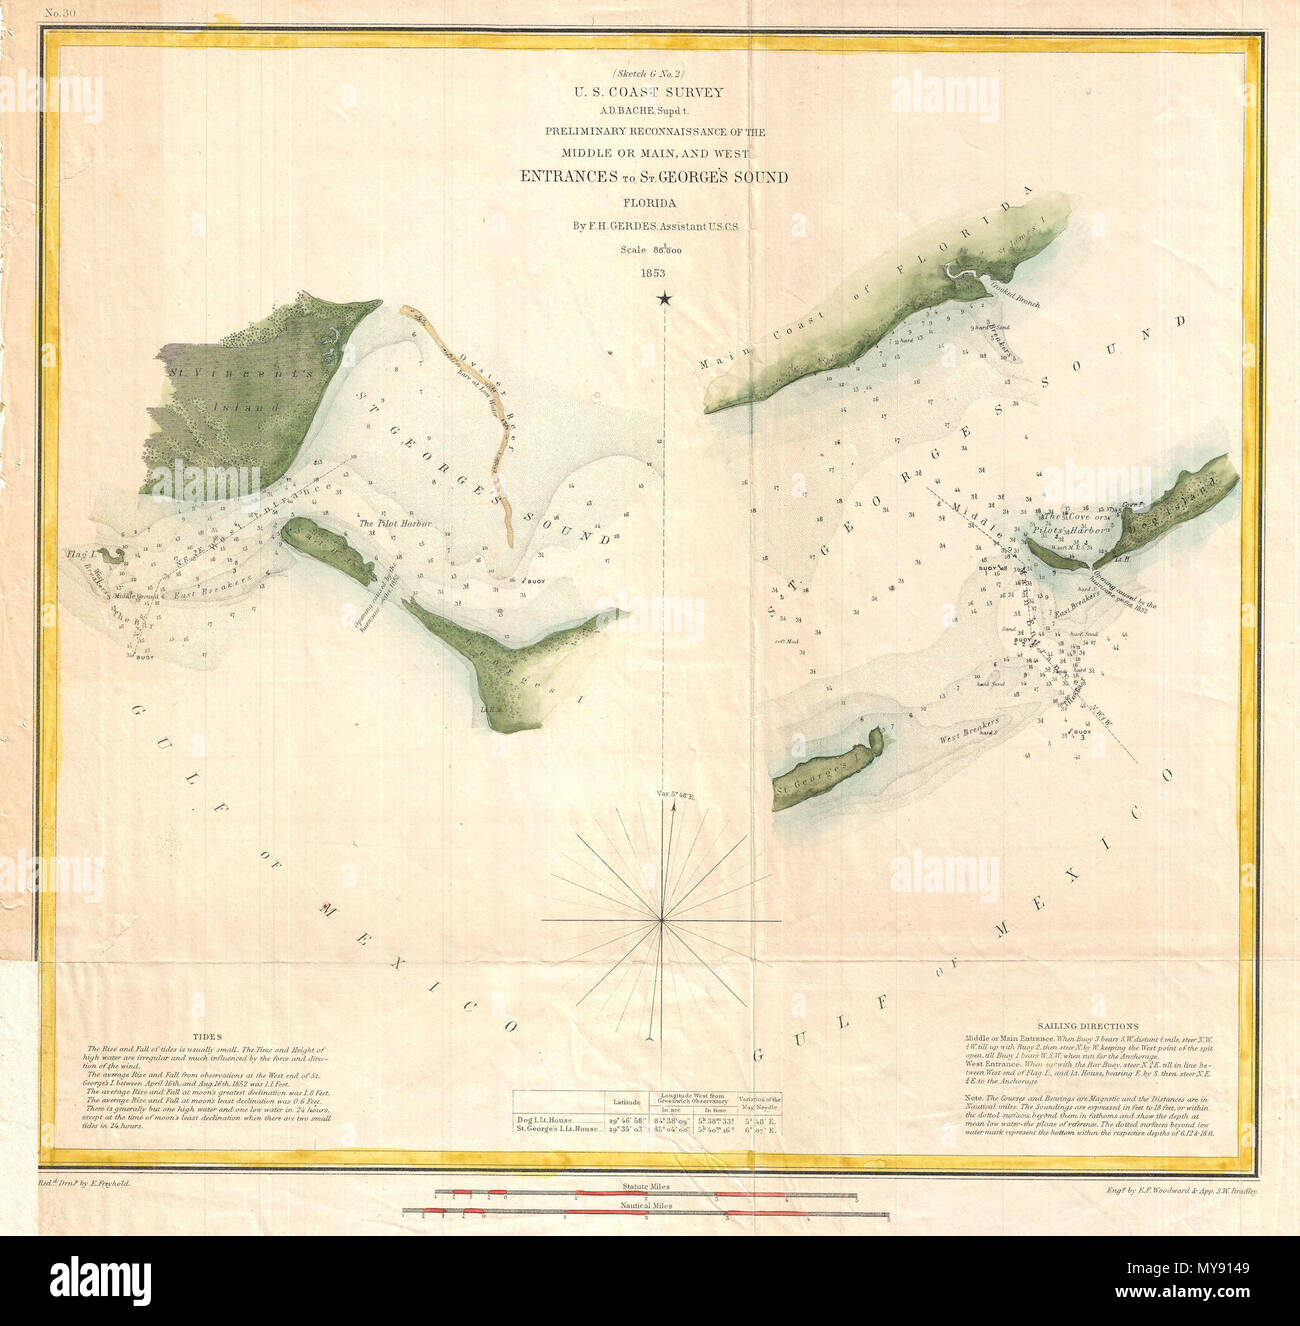 Map Of Western Florida.Sketch G No 2 Preliminary Reconnaissance Of The Middle Or Main